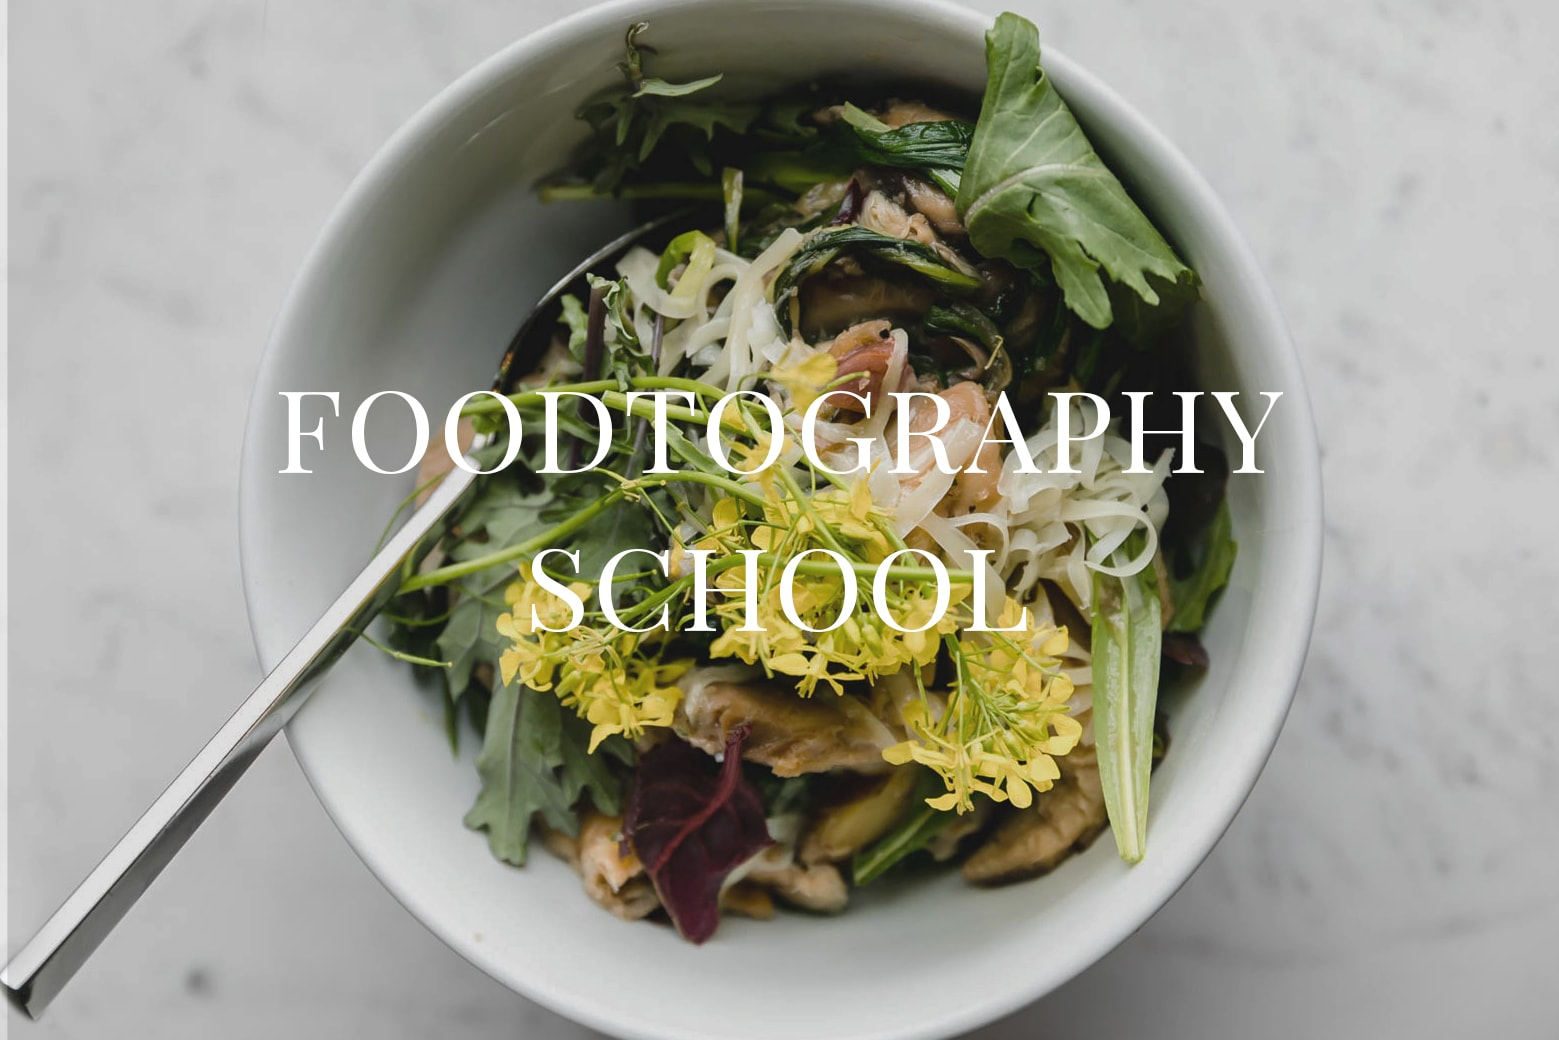 Foodtography School: a virtual food photography school designed to improve your food photography as both a skill and business in four weeks.